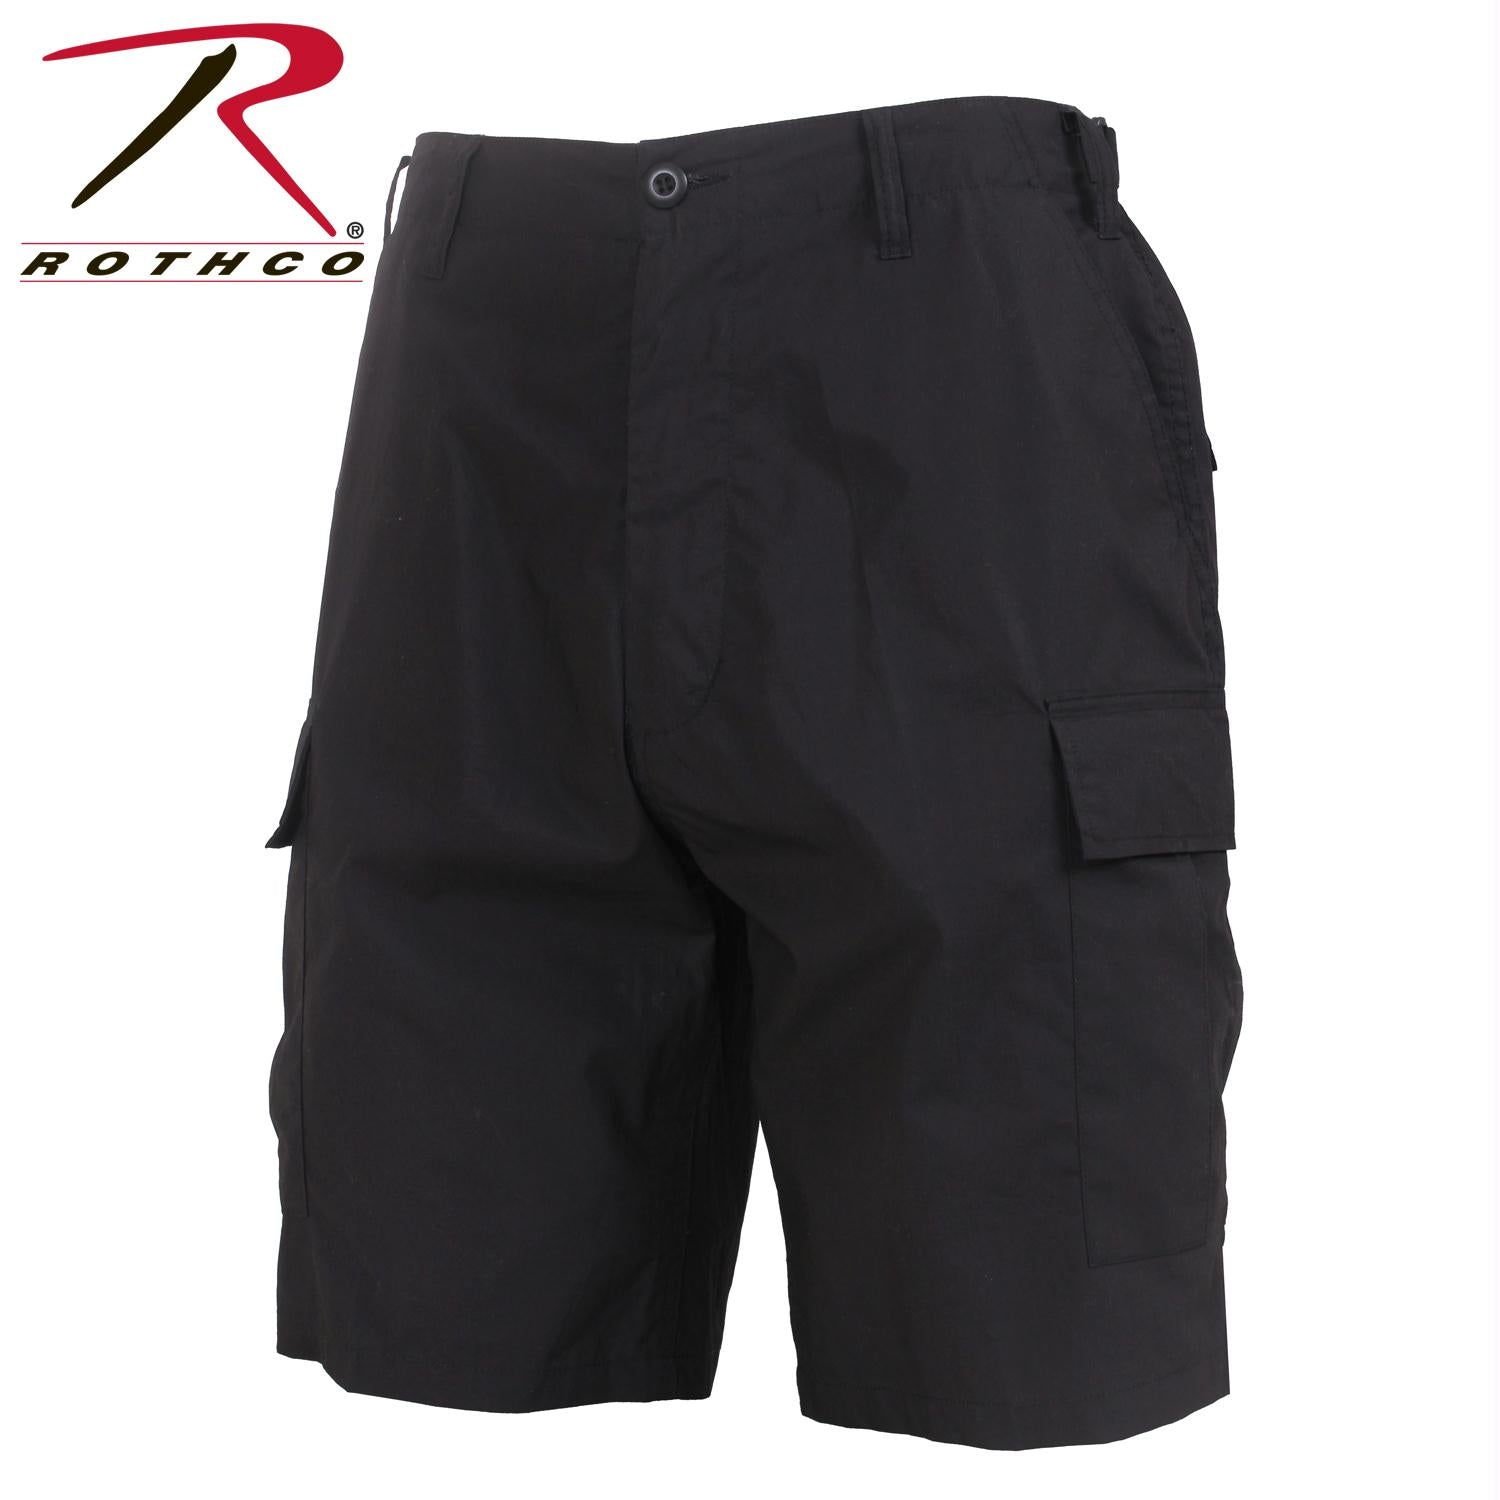 Rothco Lightweight Tactical BDU Shorts - Black / 3XL